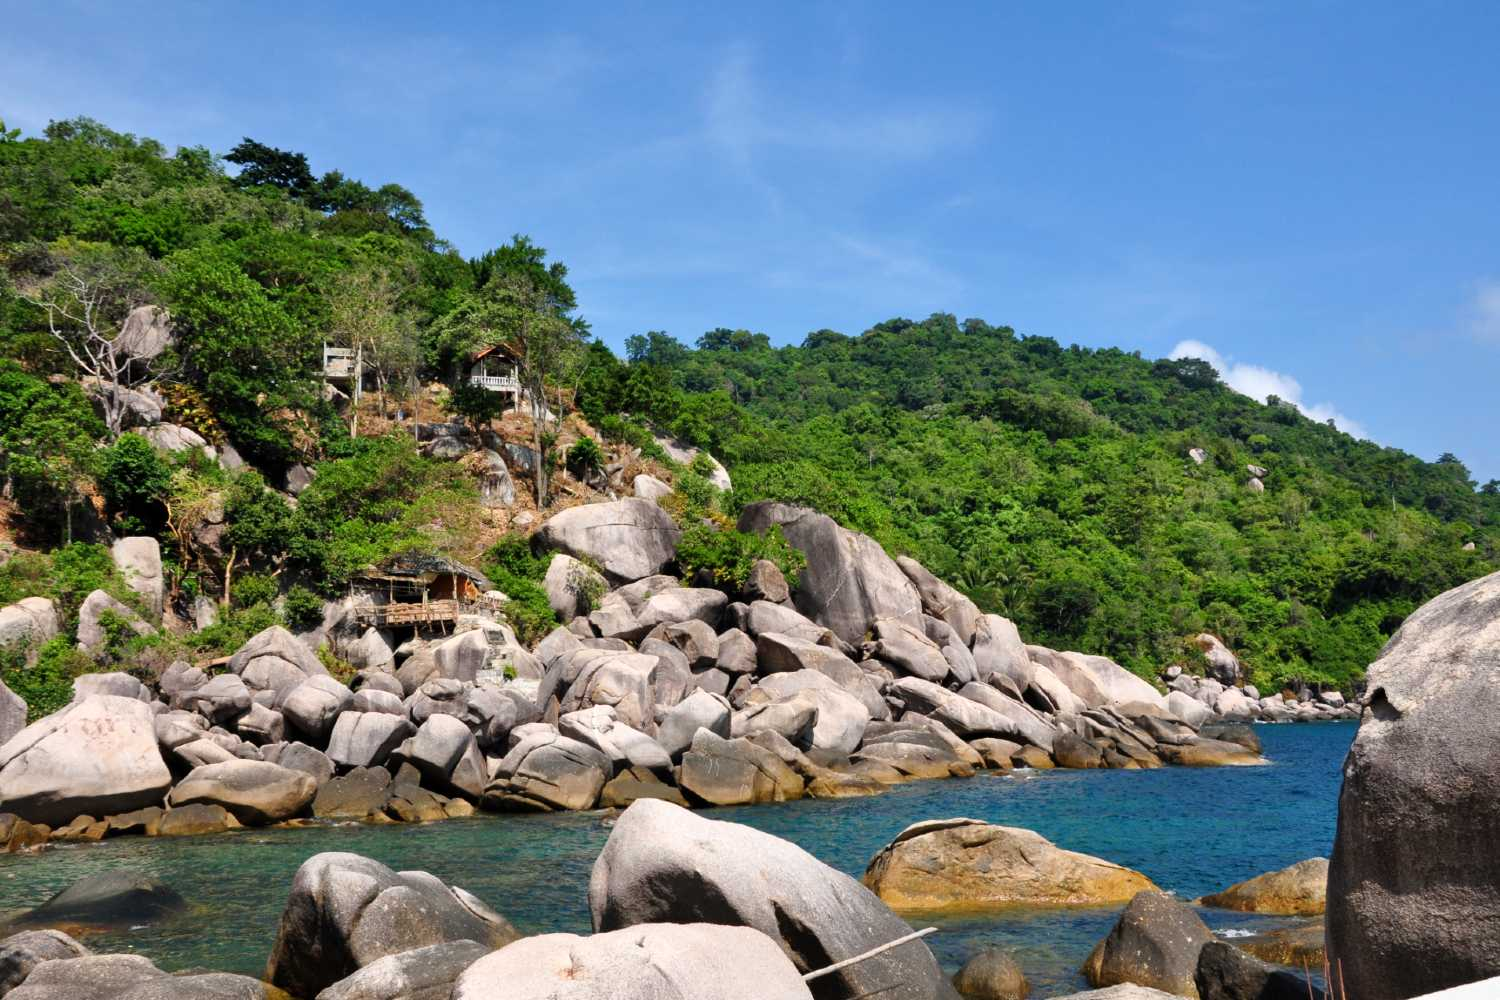 Rocks at Hin Wong Bay on Koh Toa